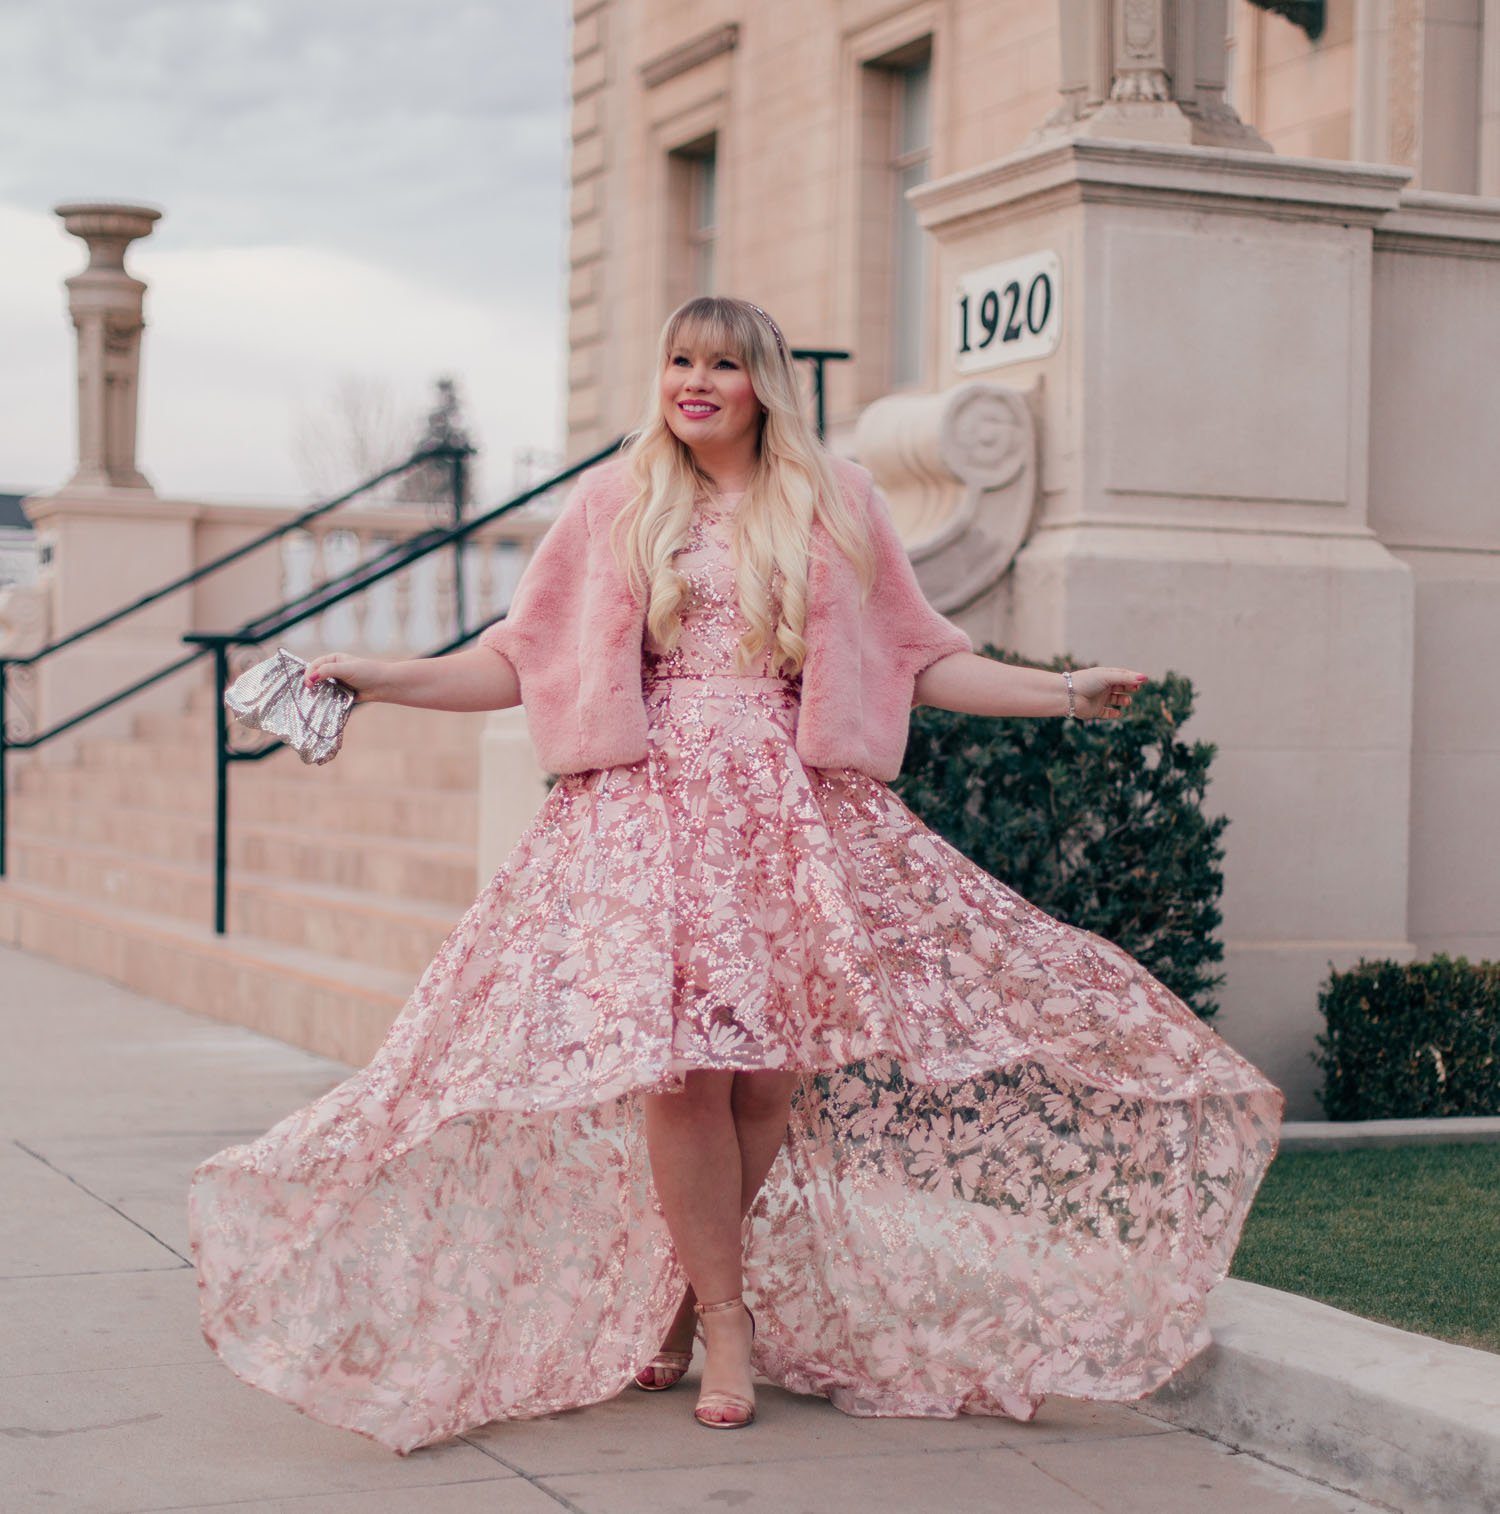 Elizabeth Hugen of Lizzie in Lace wears a pink new years eve outfit